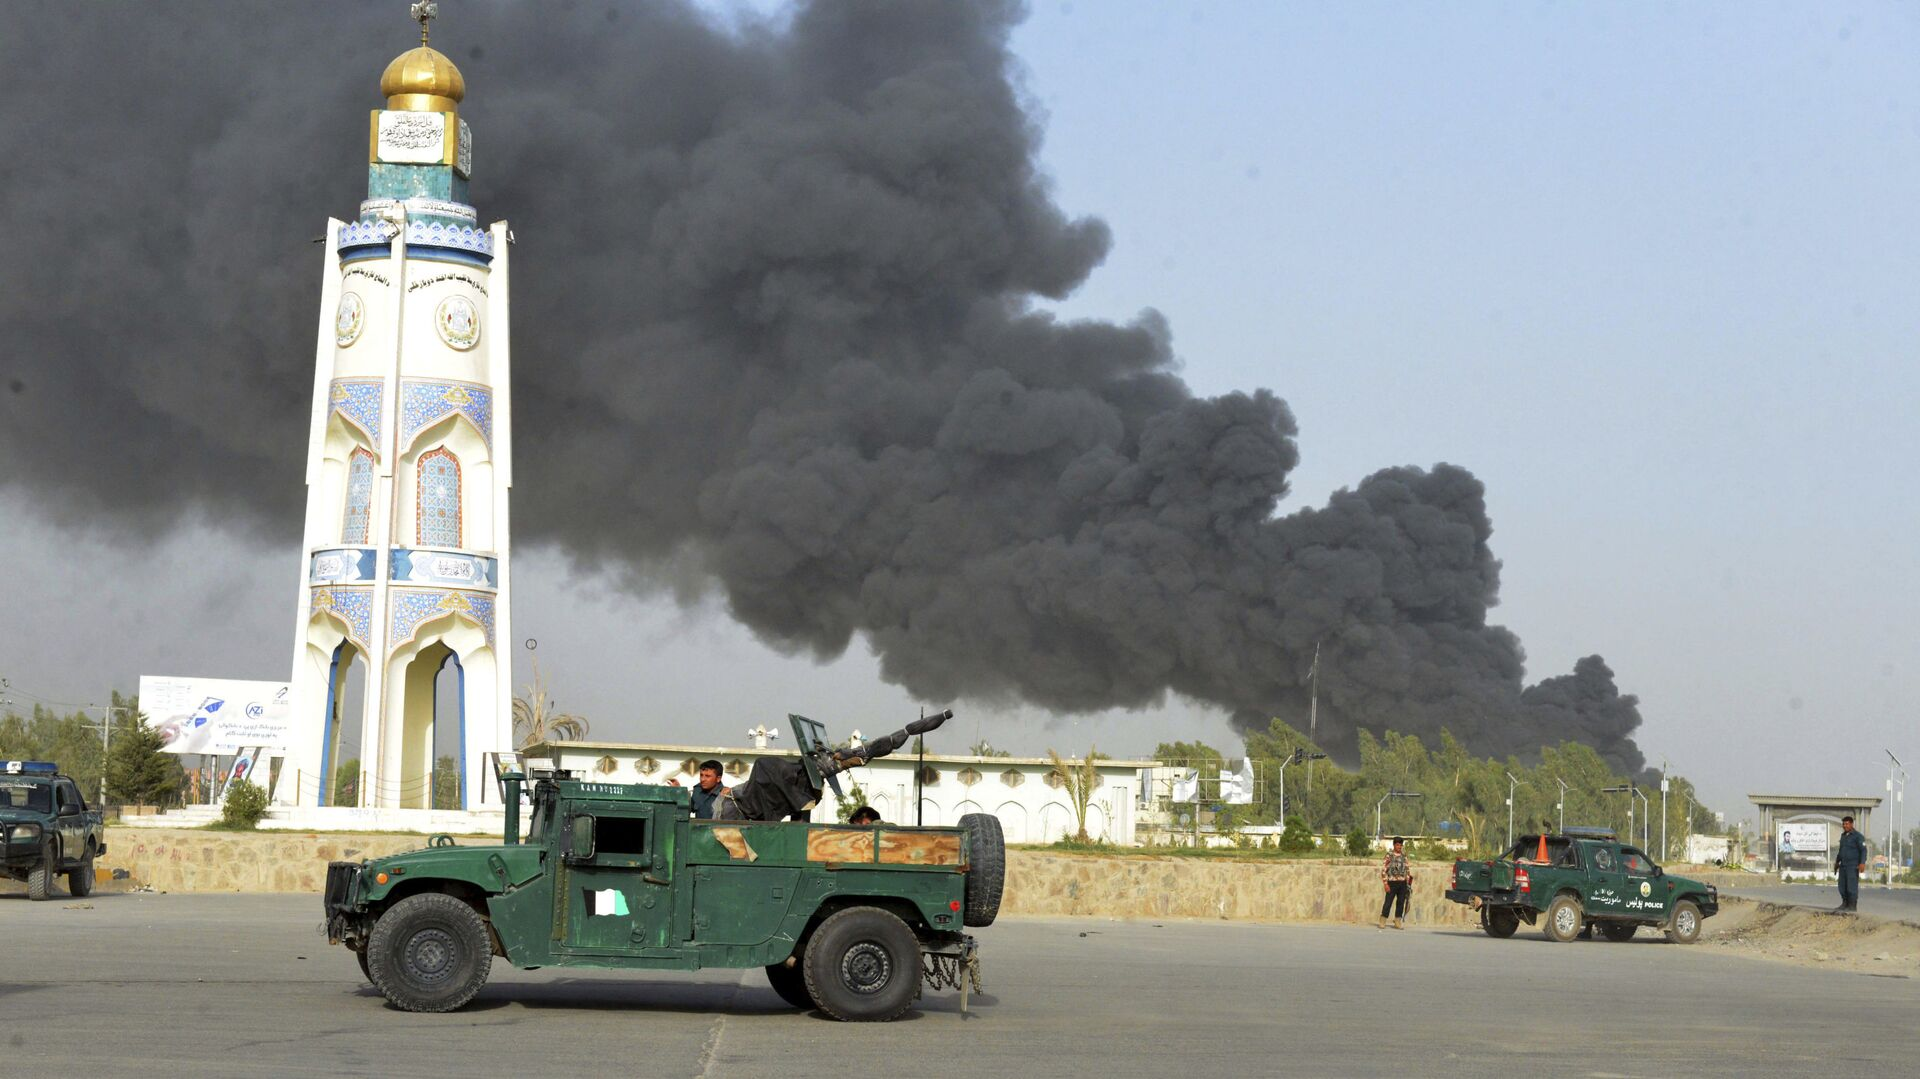 Afghan security forces arrive after a powerful explosion outside the provincial police headquarters in Kandahar province south of Kabul, Afghanistan, Thursday, July 18, 2019. - Sputnik International, 1920, 25.09.2021